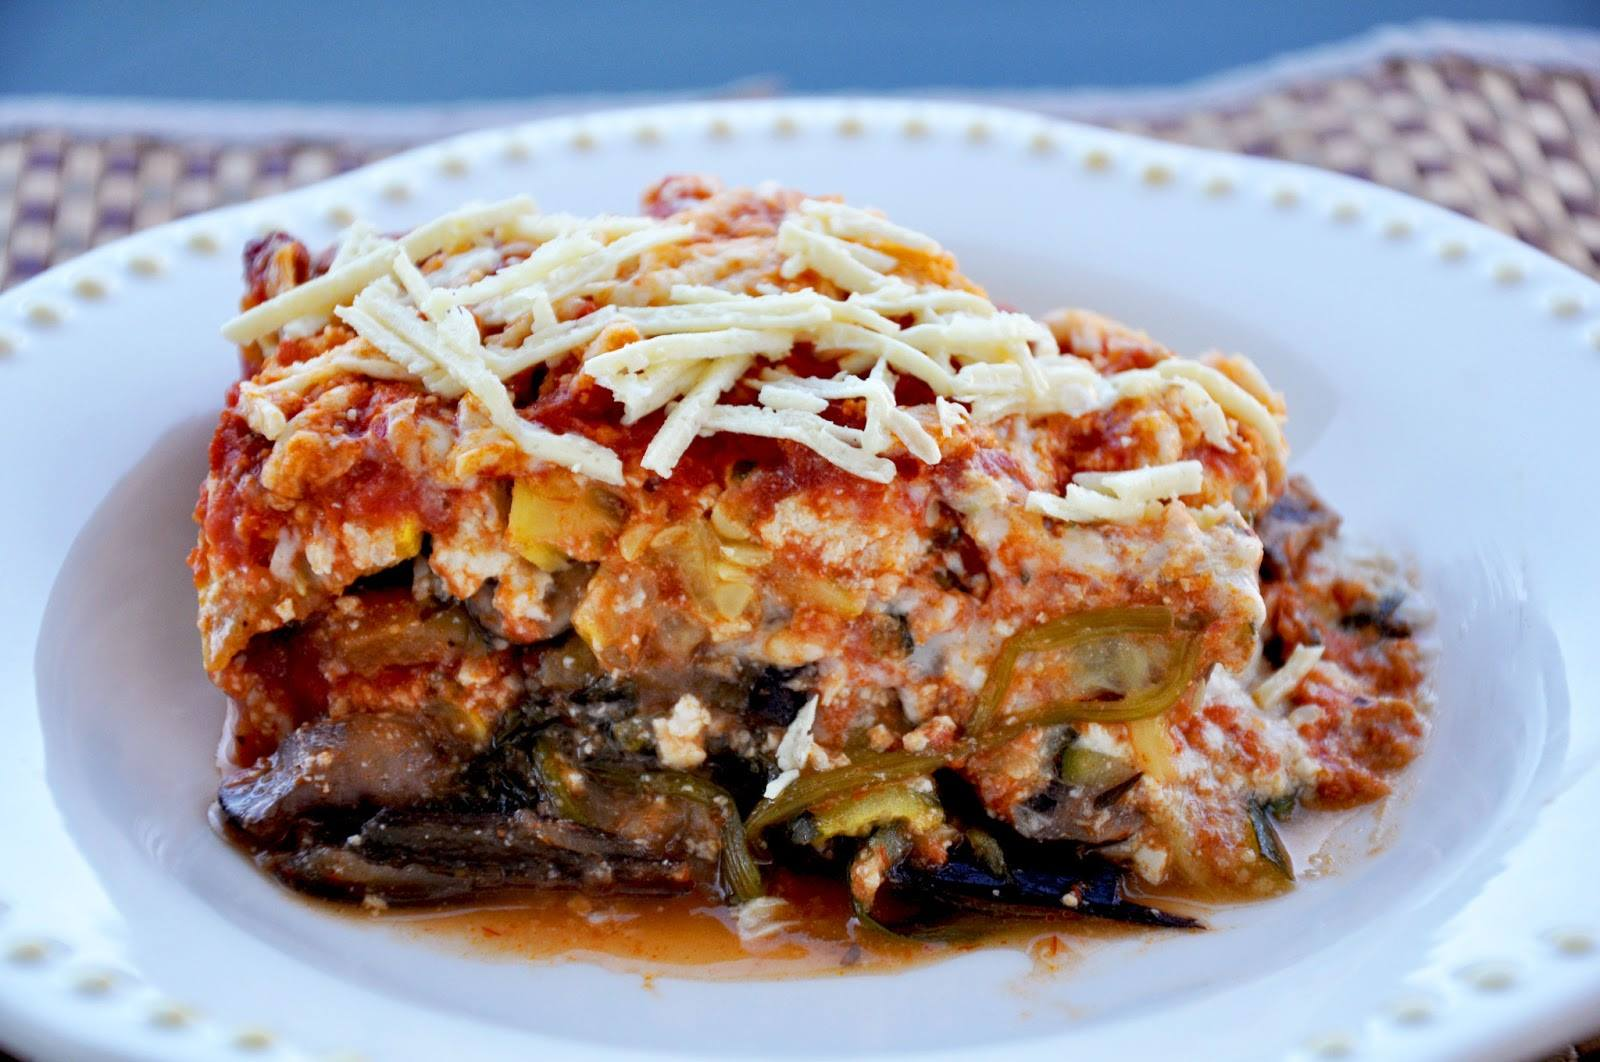 NO PASTA LASAGNA (Vegan and Gluten Free!)